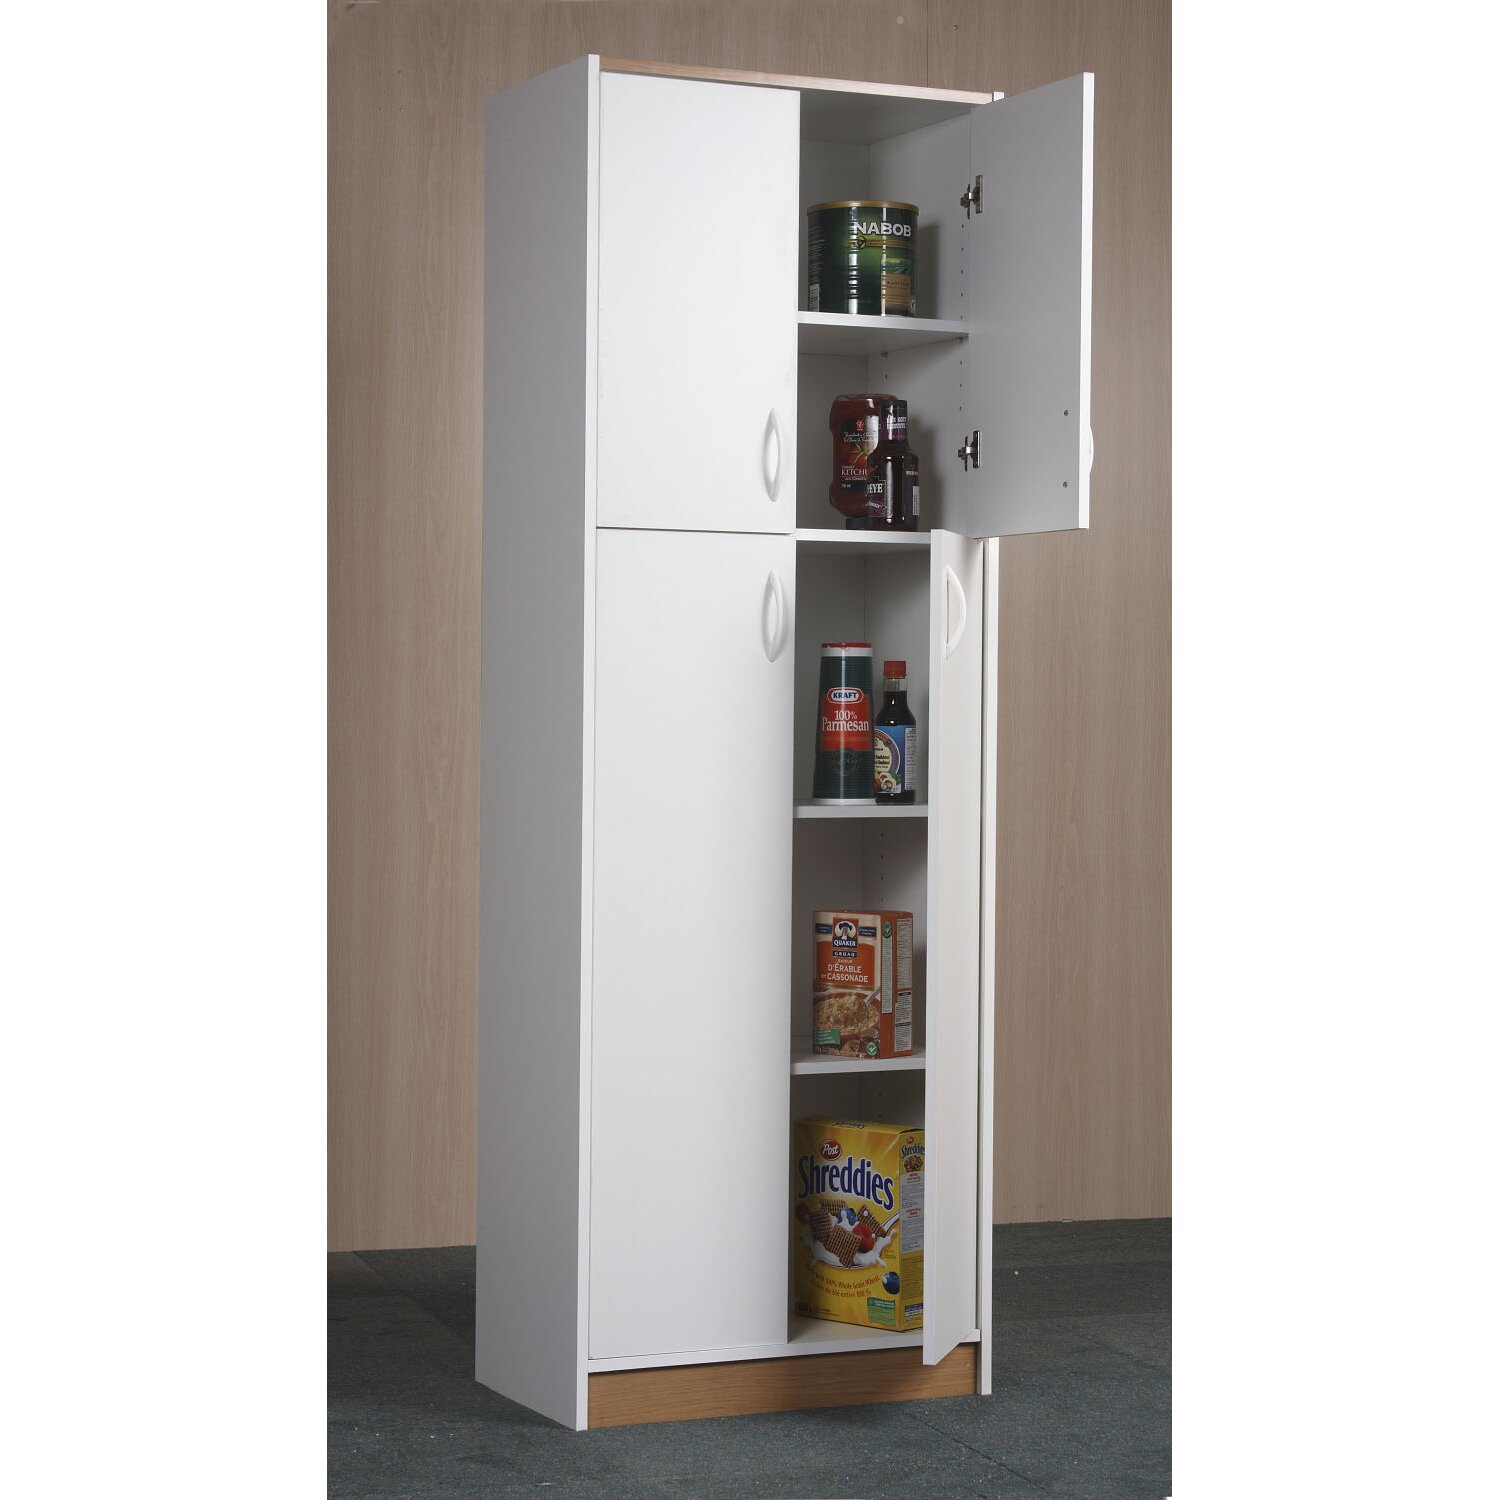 pantry cabinet kitchen cabinet pantry unit with food pantries wayfair with kitchen microwave. Black Bedroom Furniture Sets. Home Design Ideas